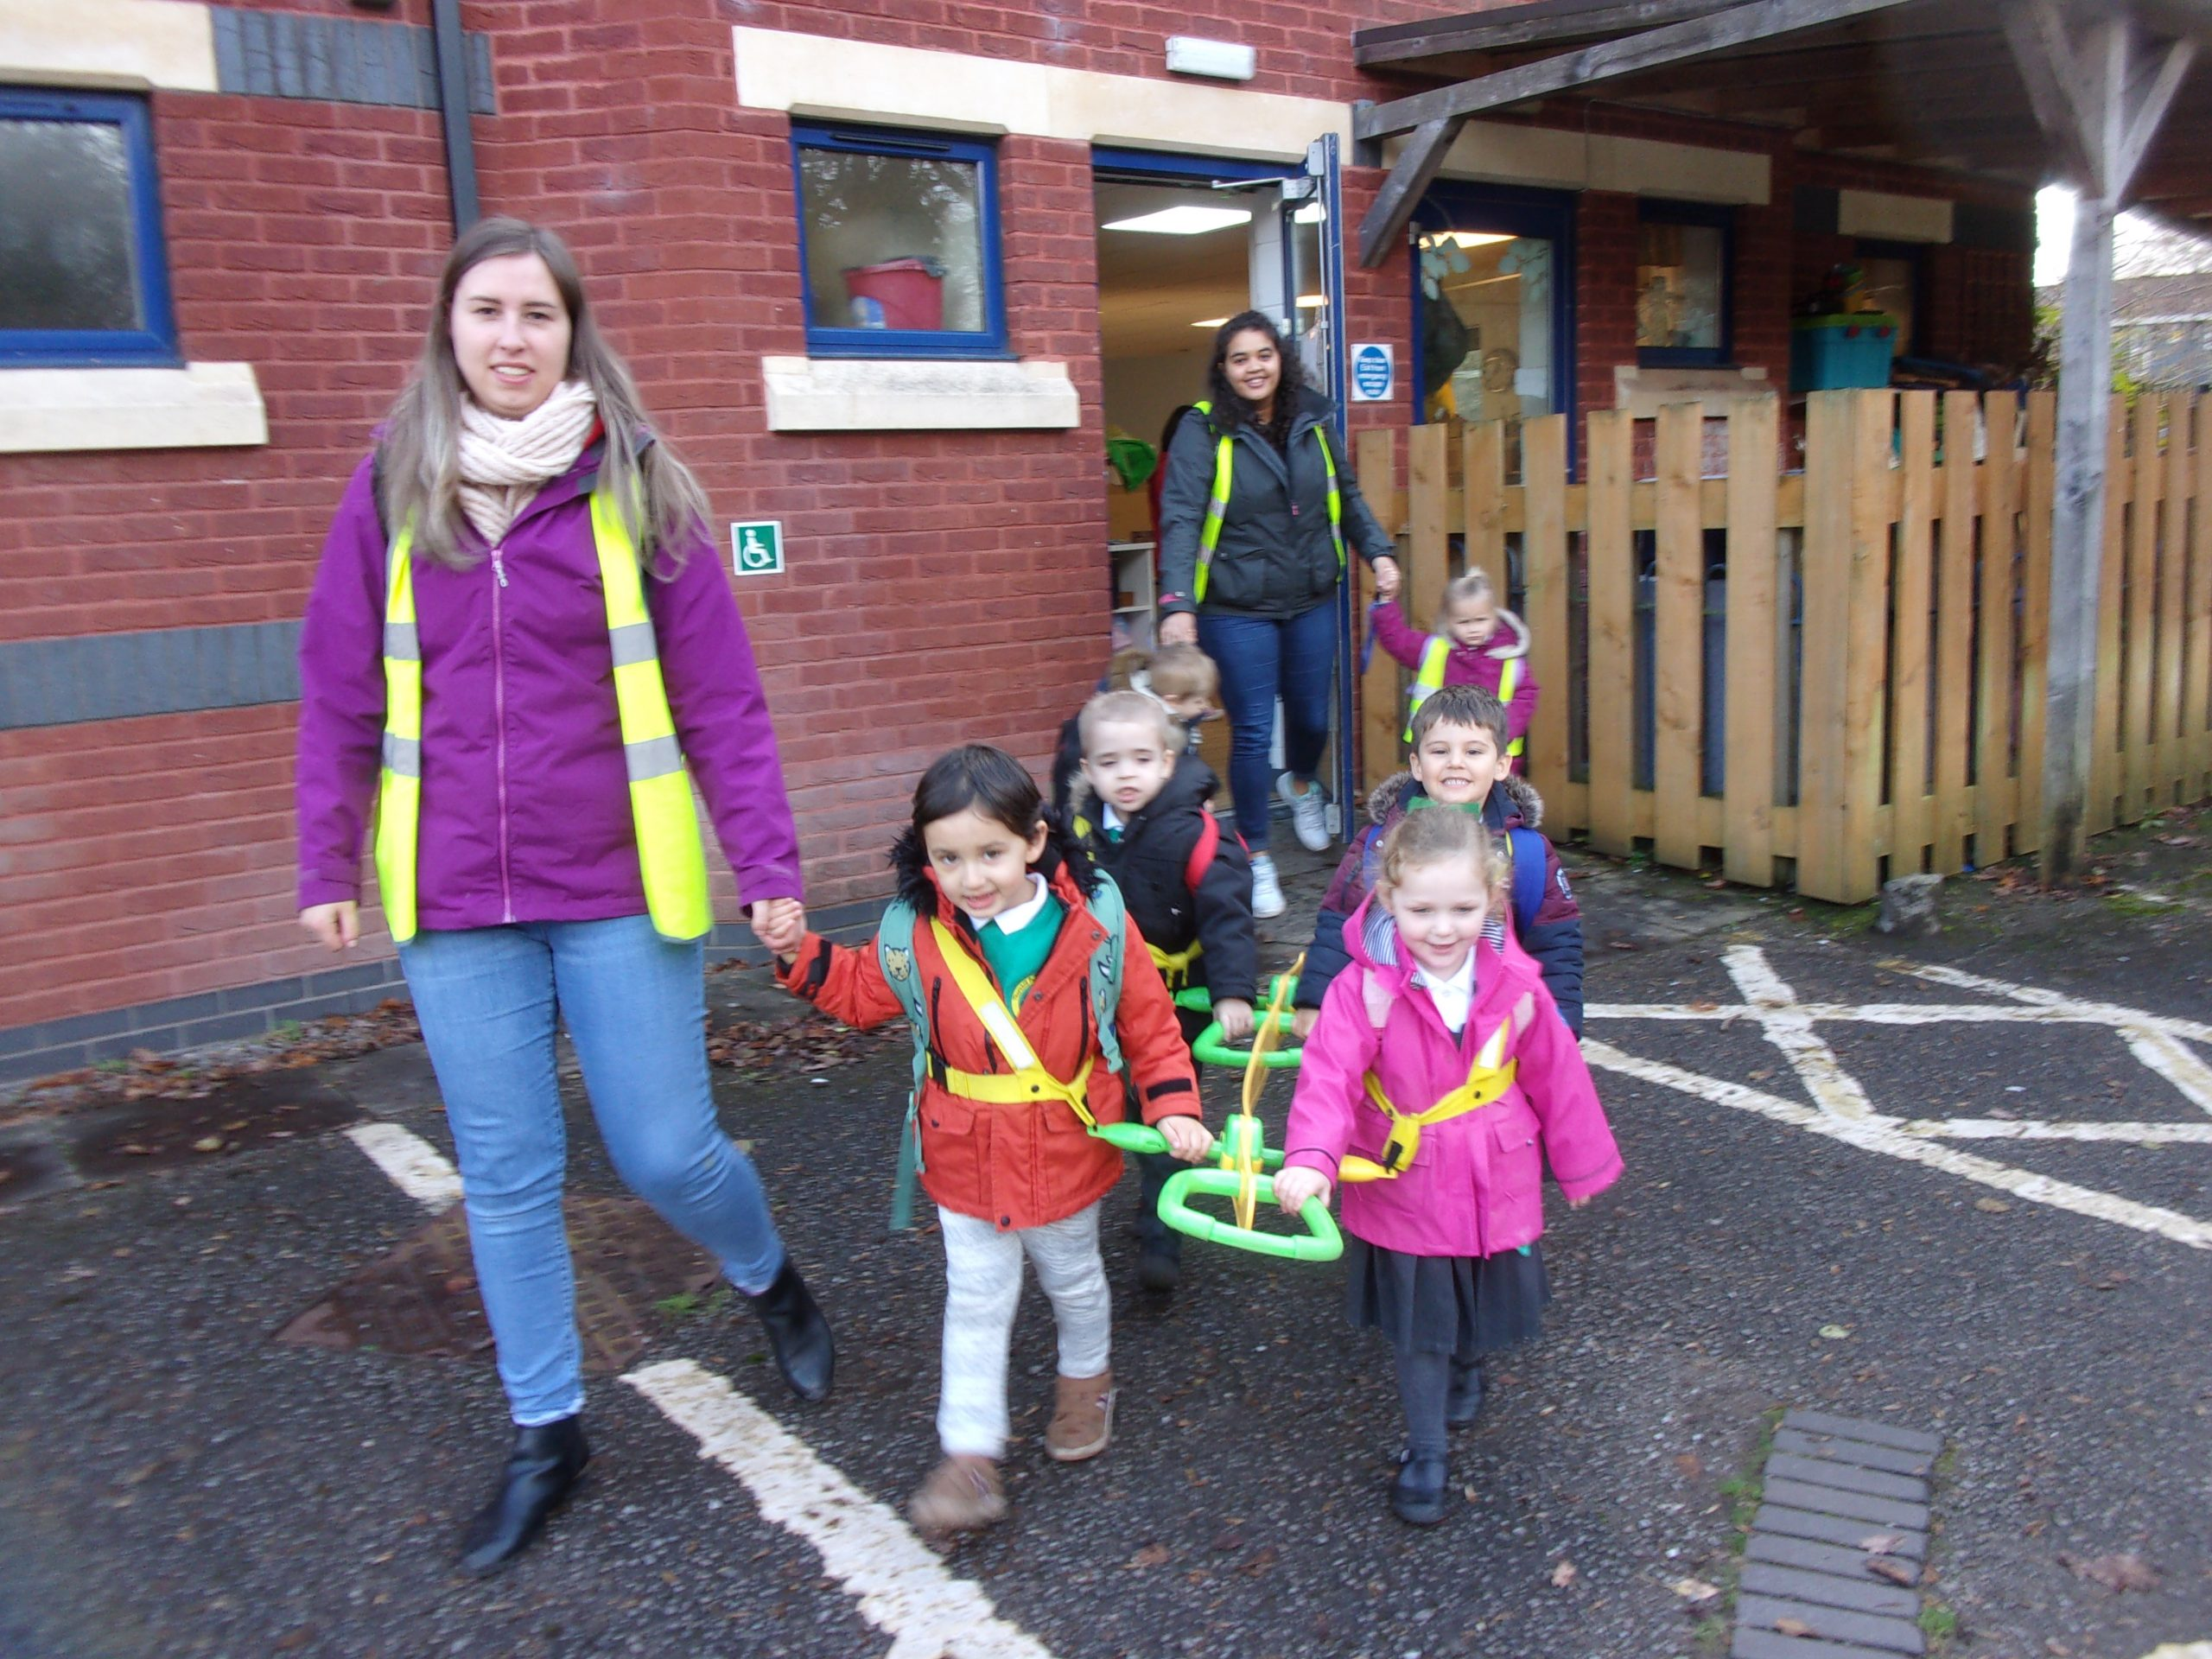 Walkover to Thornhill Primary School